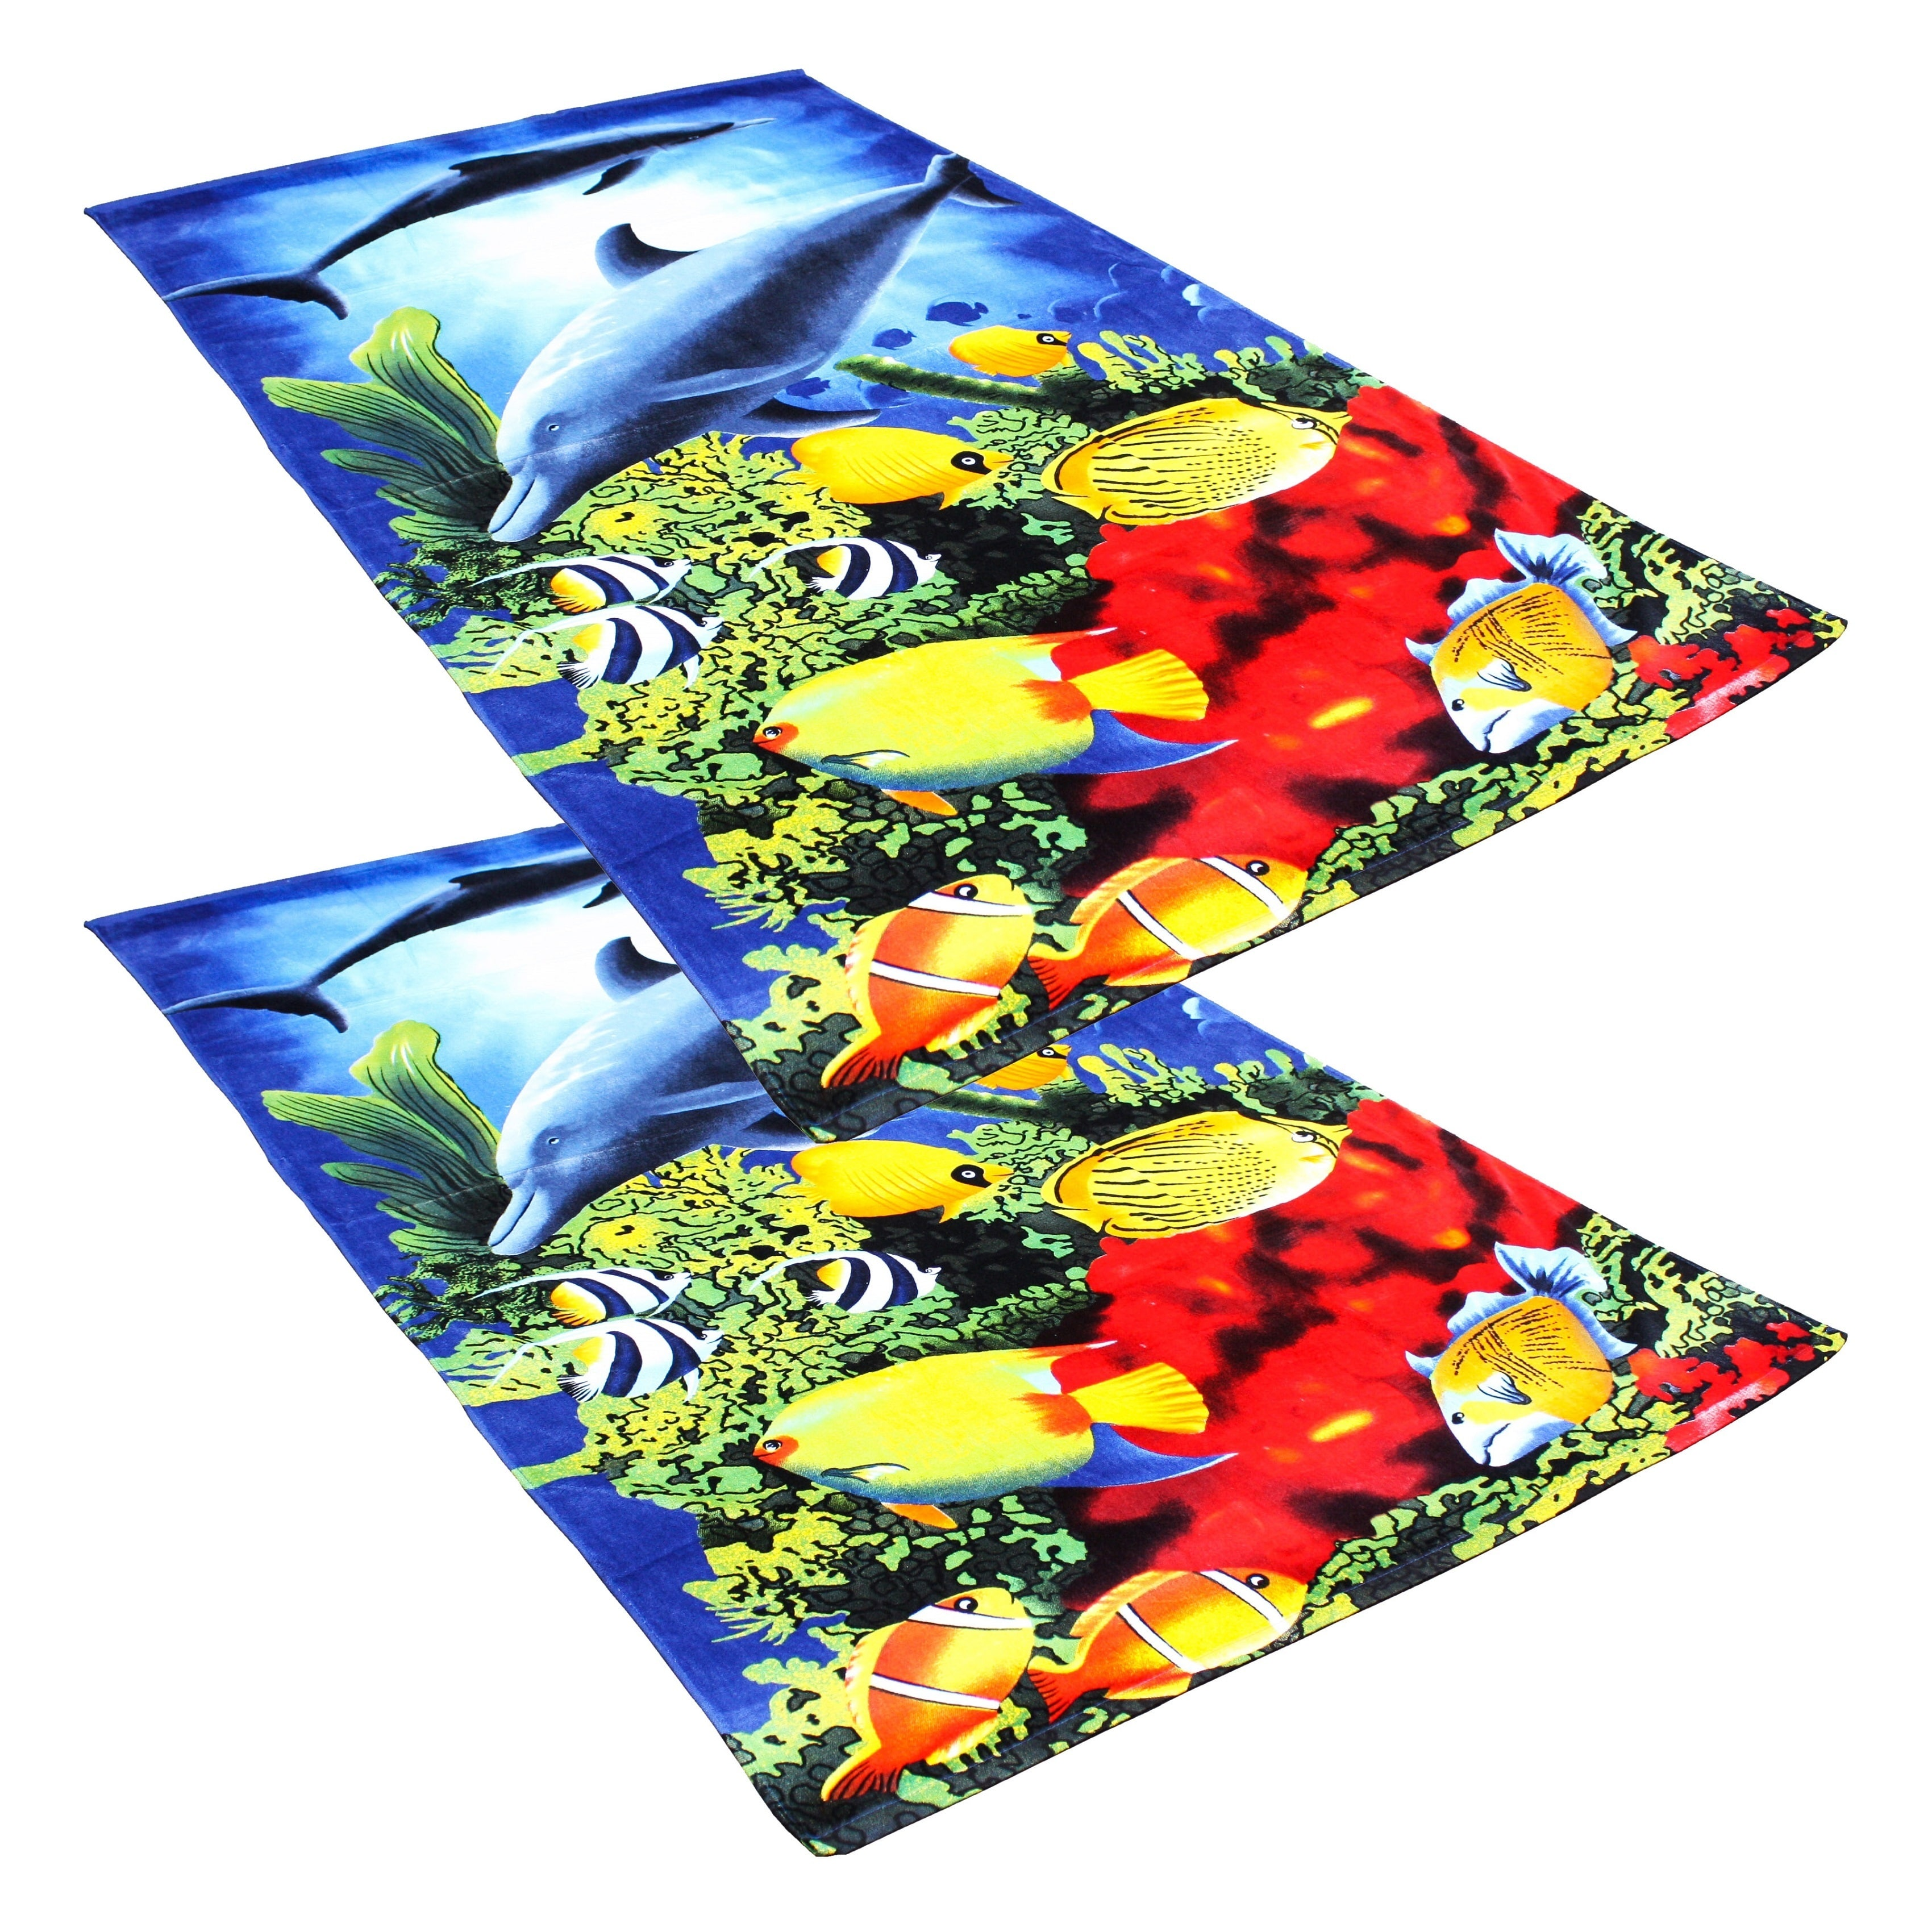 J & M Home Fashions  Dolphin Reef 40x70 Fiber Reactive Beach Towels (set of 2)